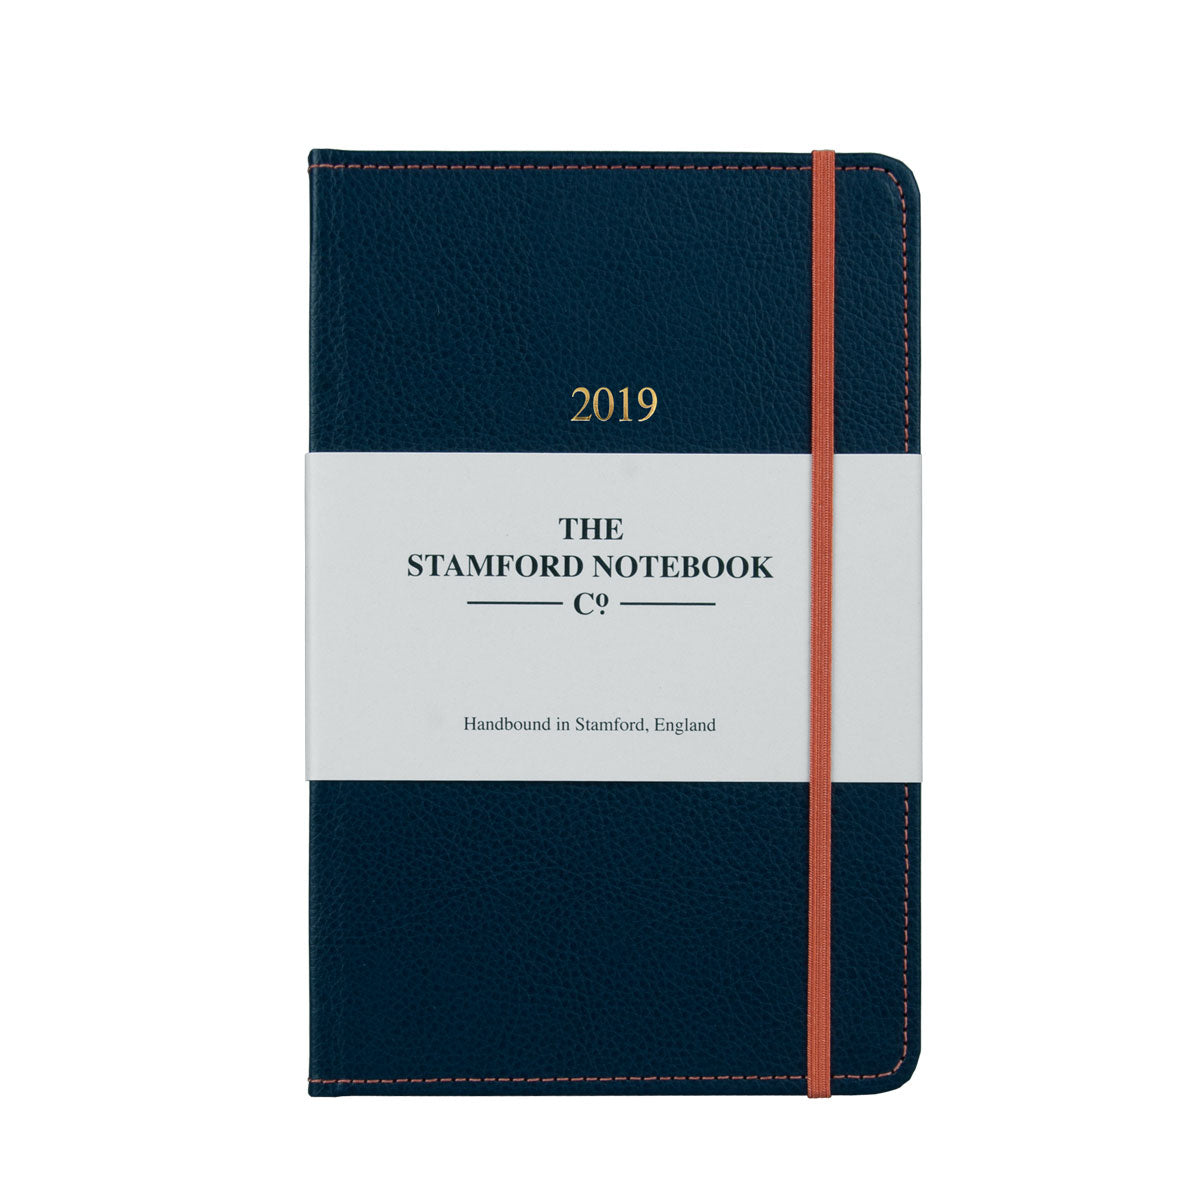 Marine Blue leather diary with orange stitching